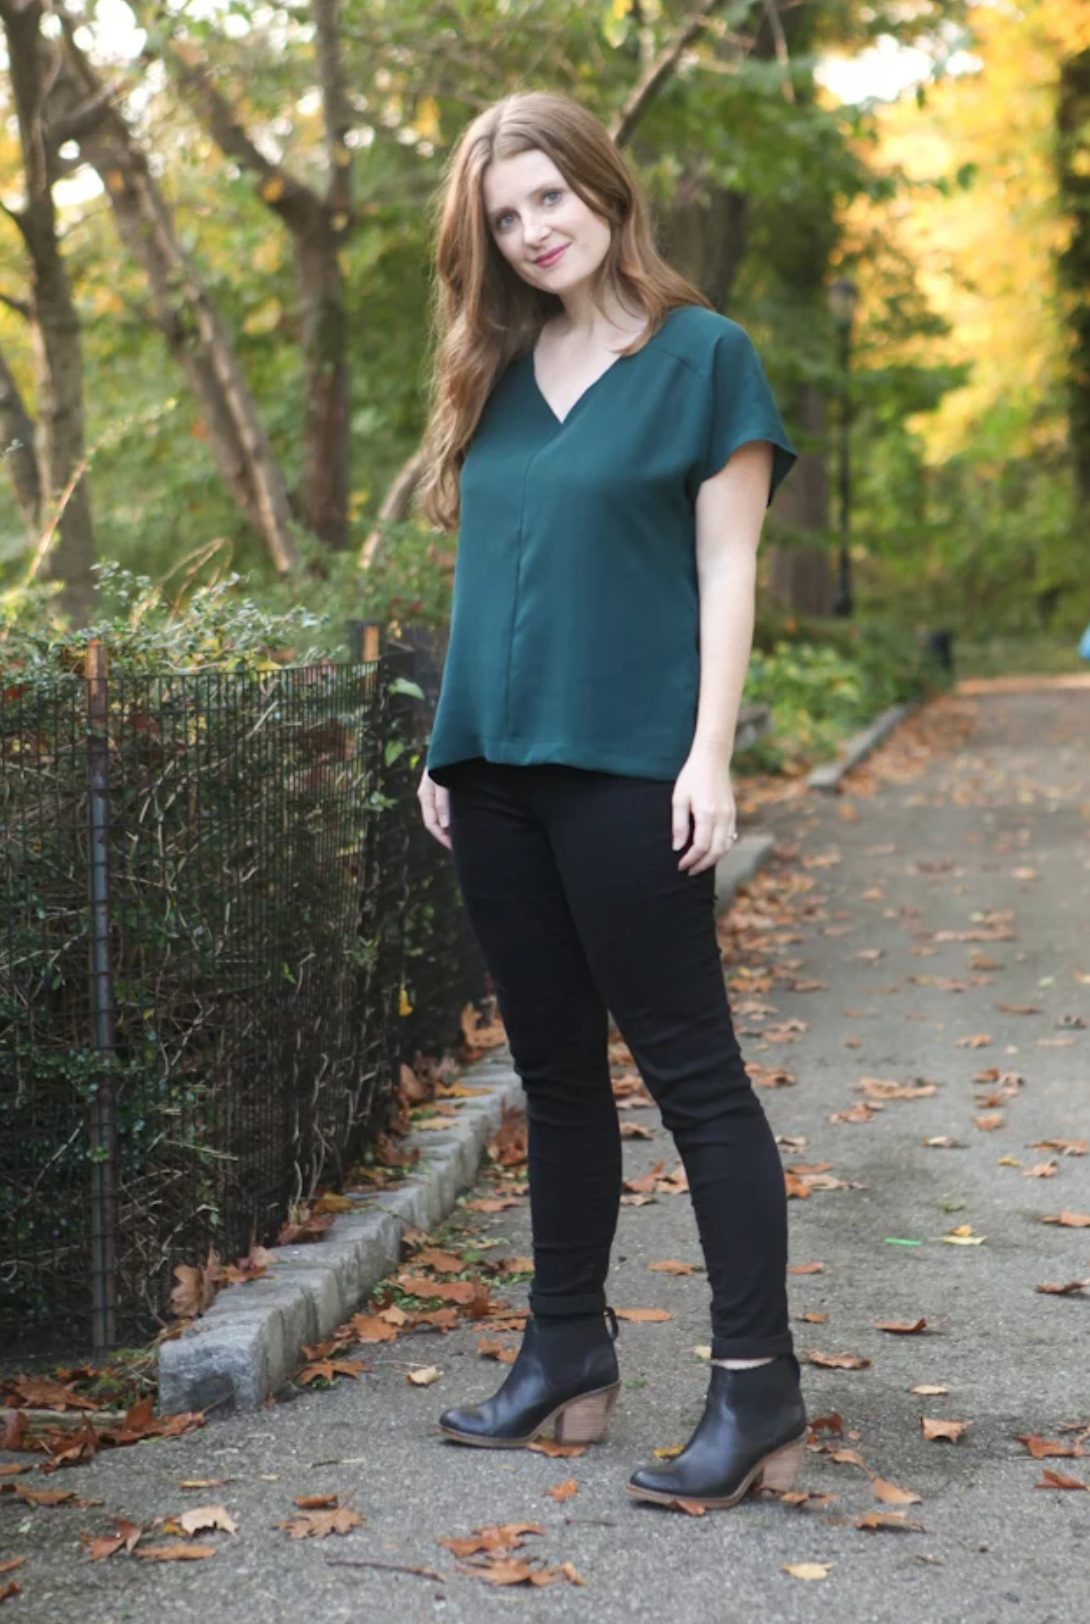 Woman wearing the Sutton Blouse sewing pattern by True Bias. A loose fitting V-neck top pattern made in rayon challis, crepe, silk or lightweight linen fabric featuring grown on sleeves, a one-piece yoke and a back inverted pleat.